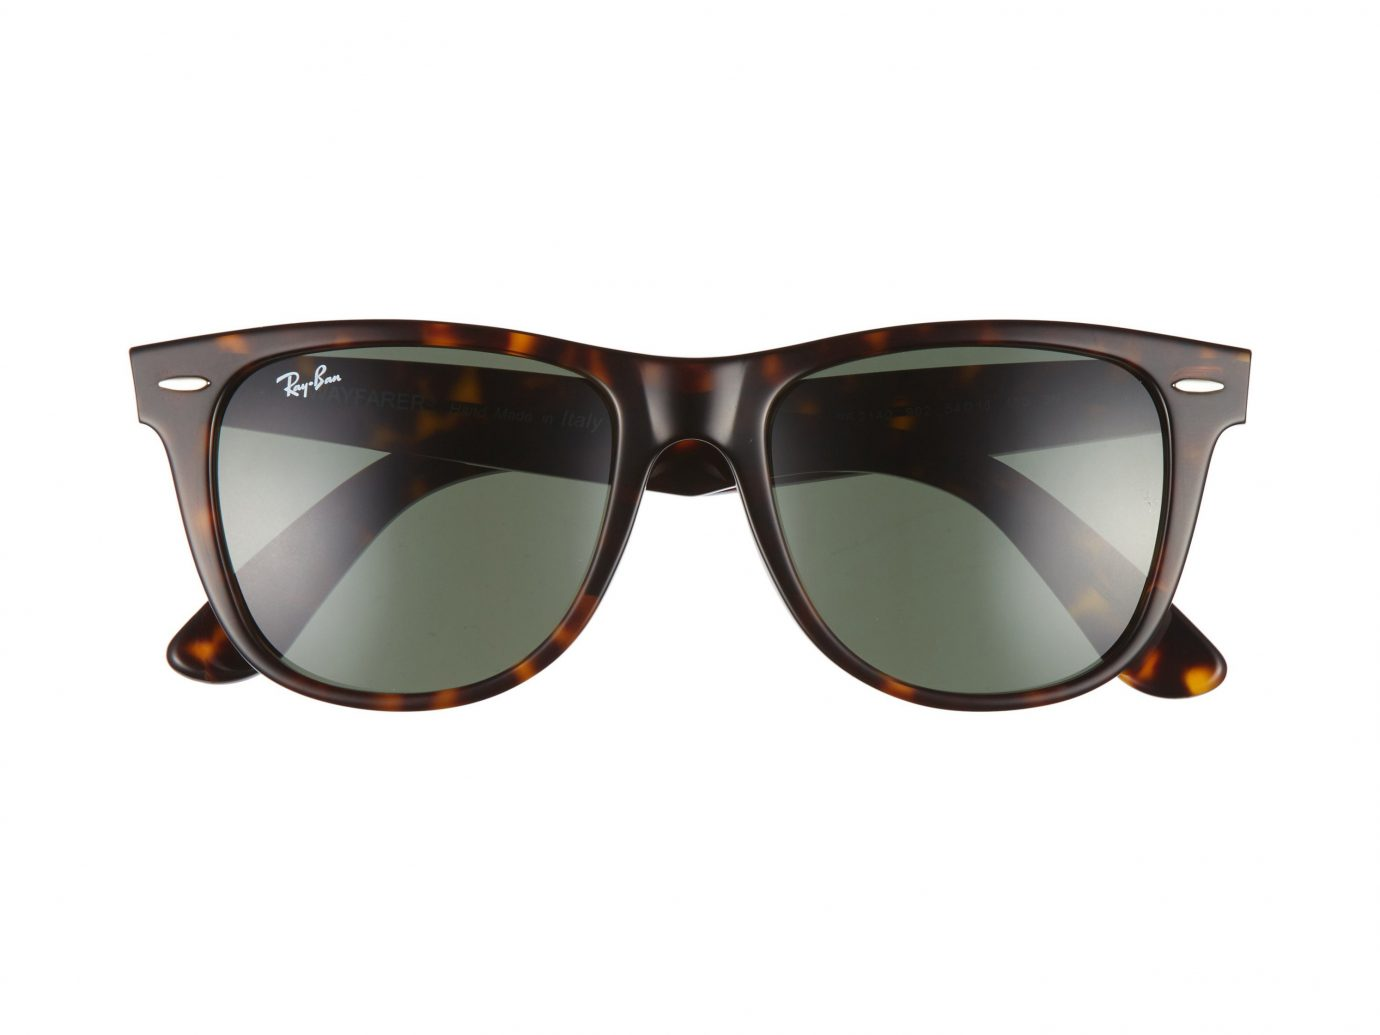 eyewear sunglasses vision care glasses goggles brown product product design personal protective equipment